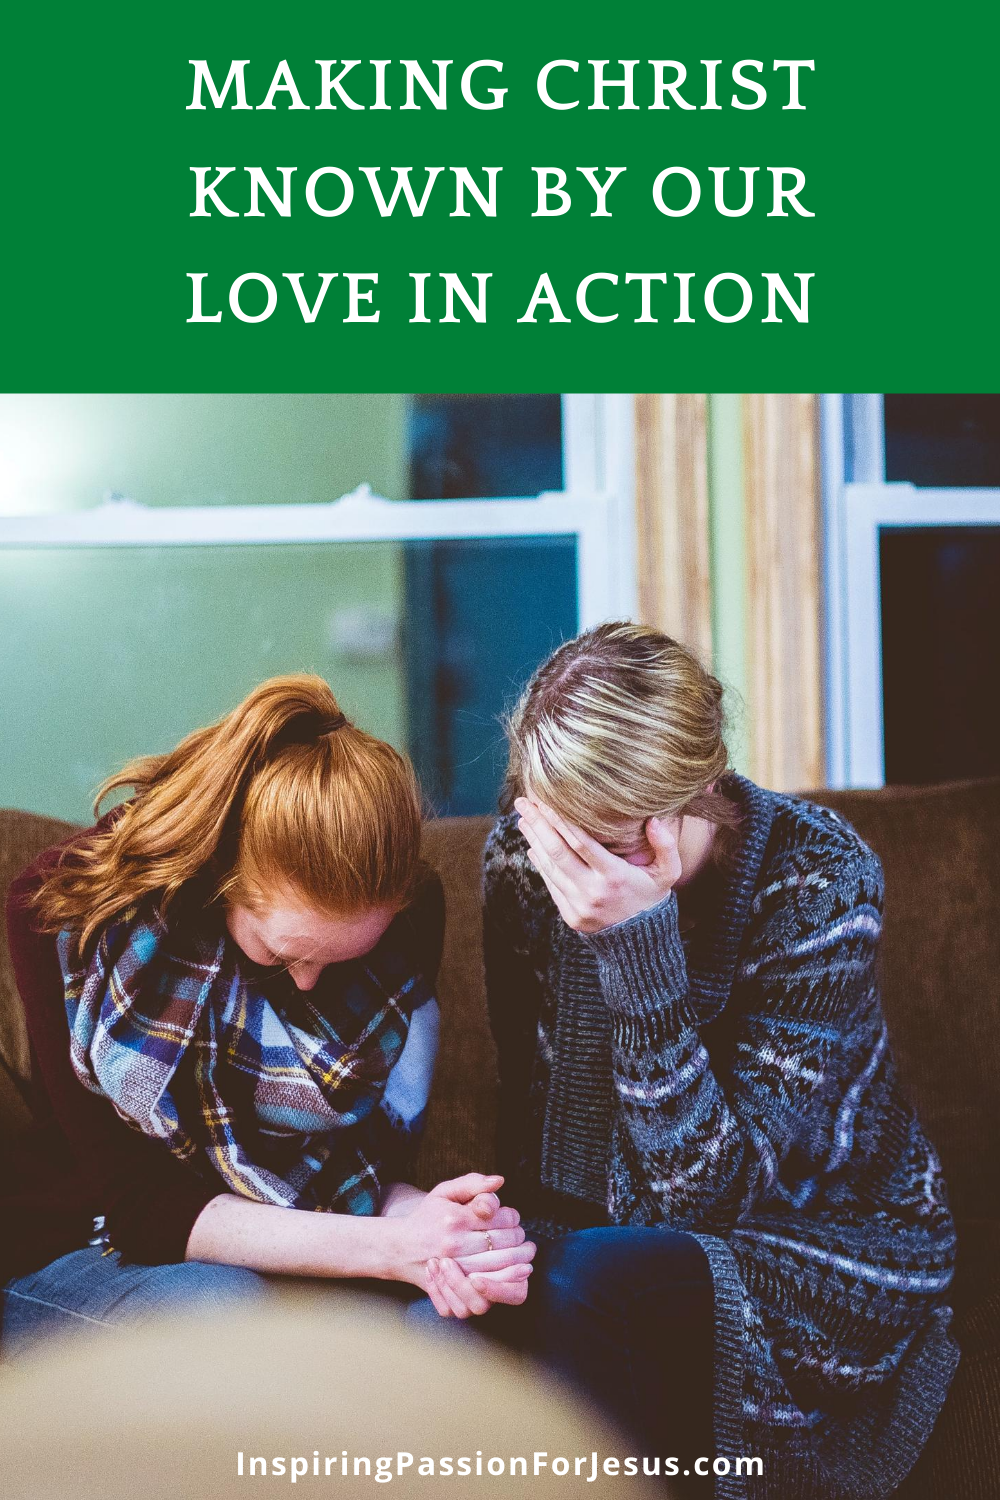 Making Christ Known by Our Love in Action